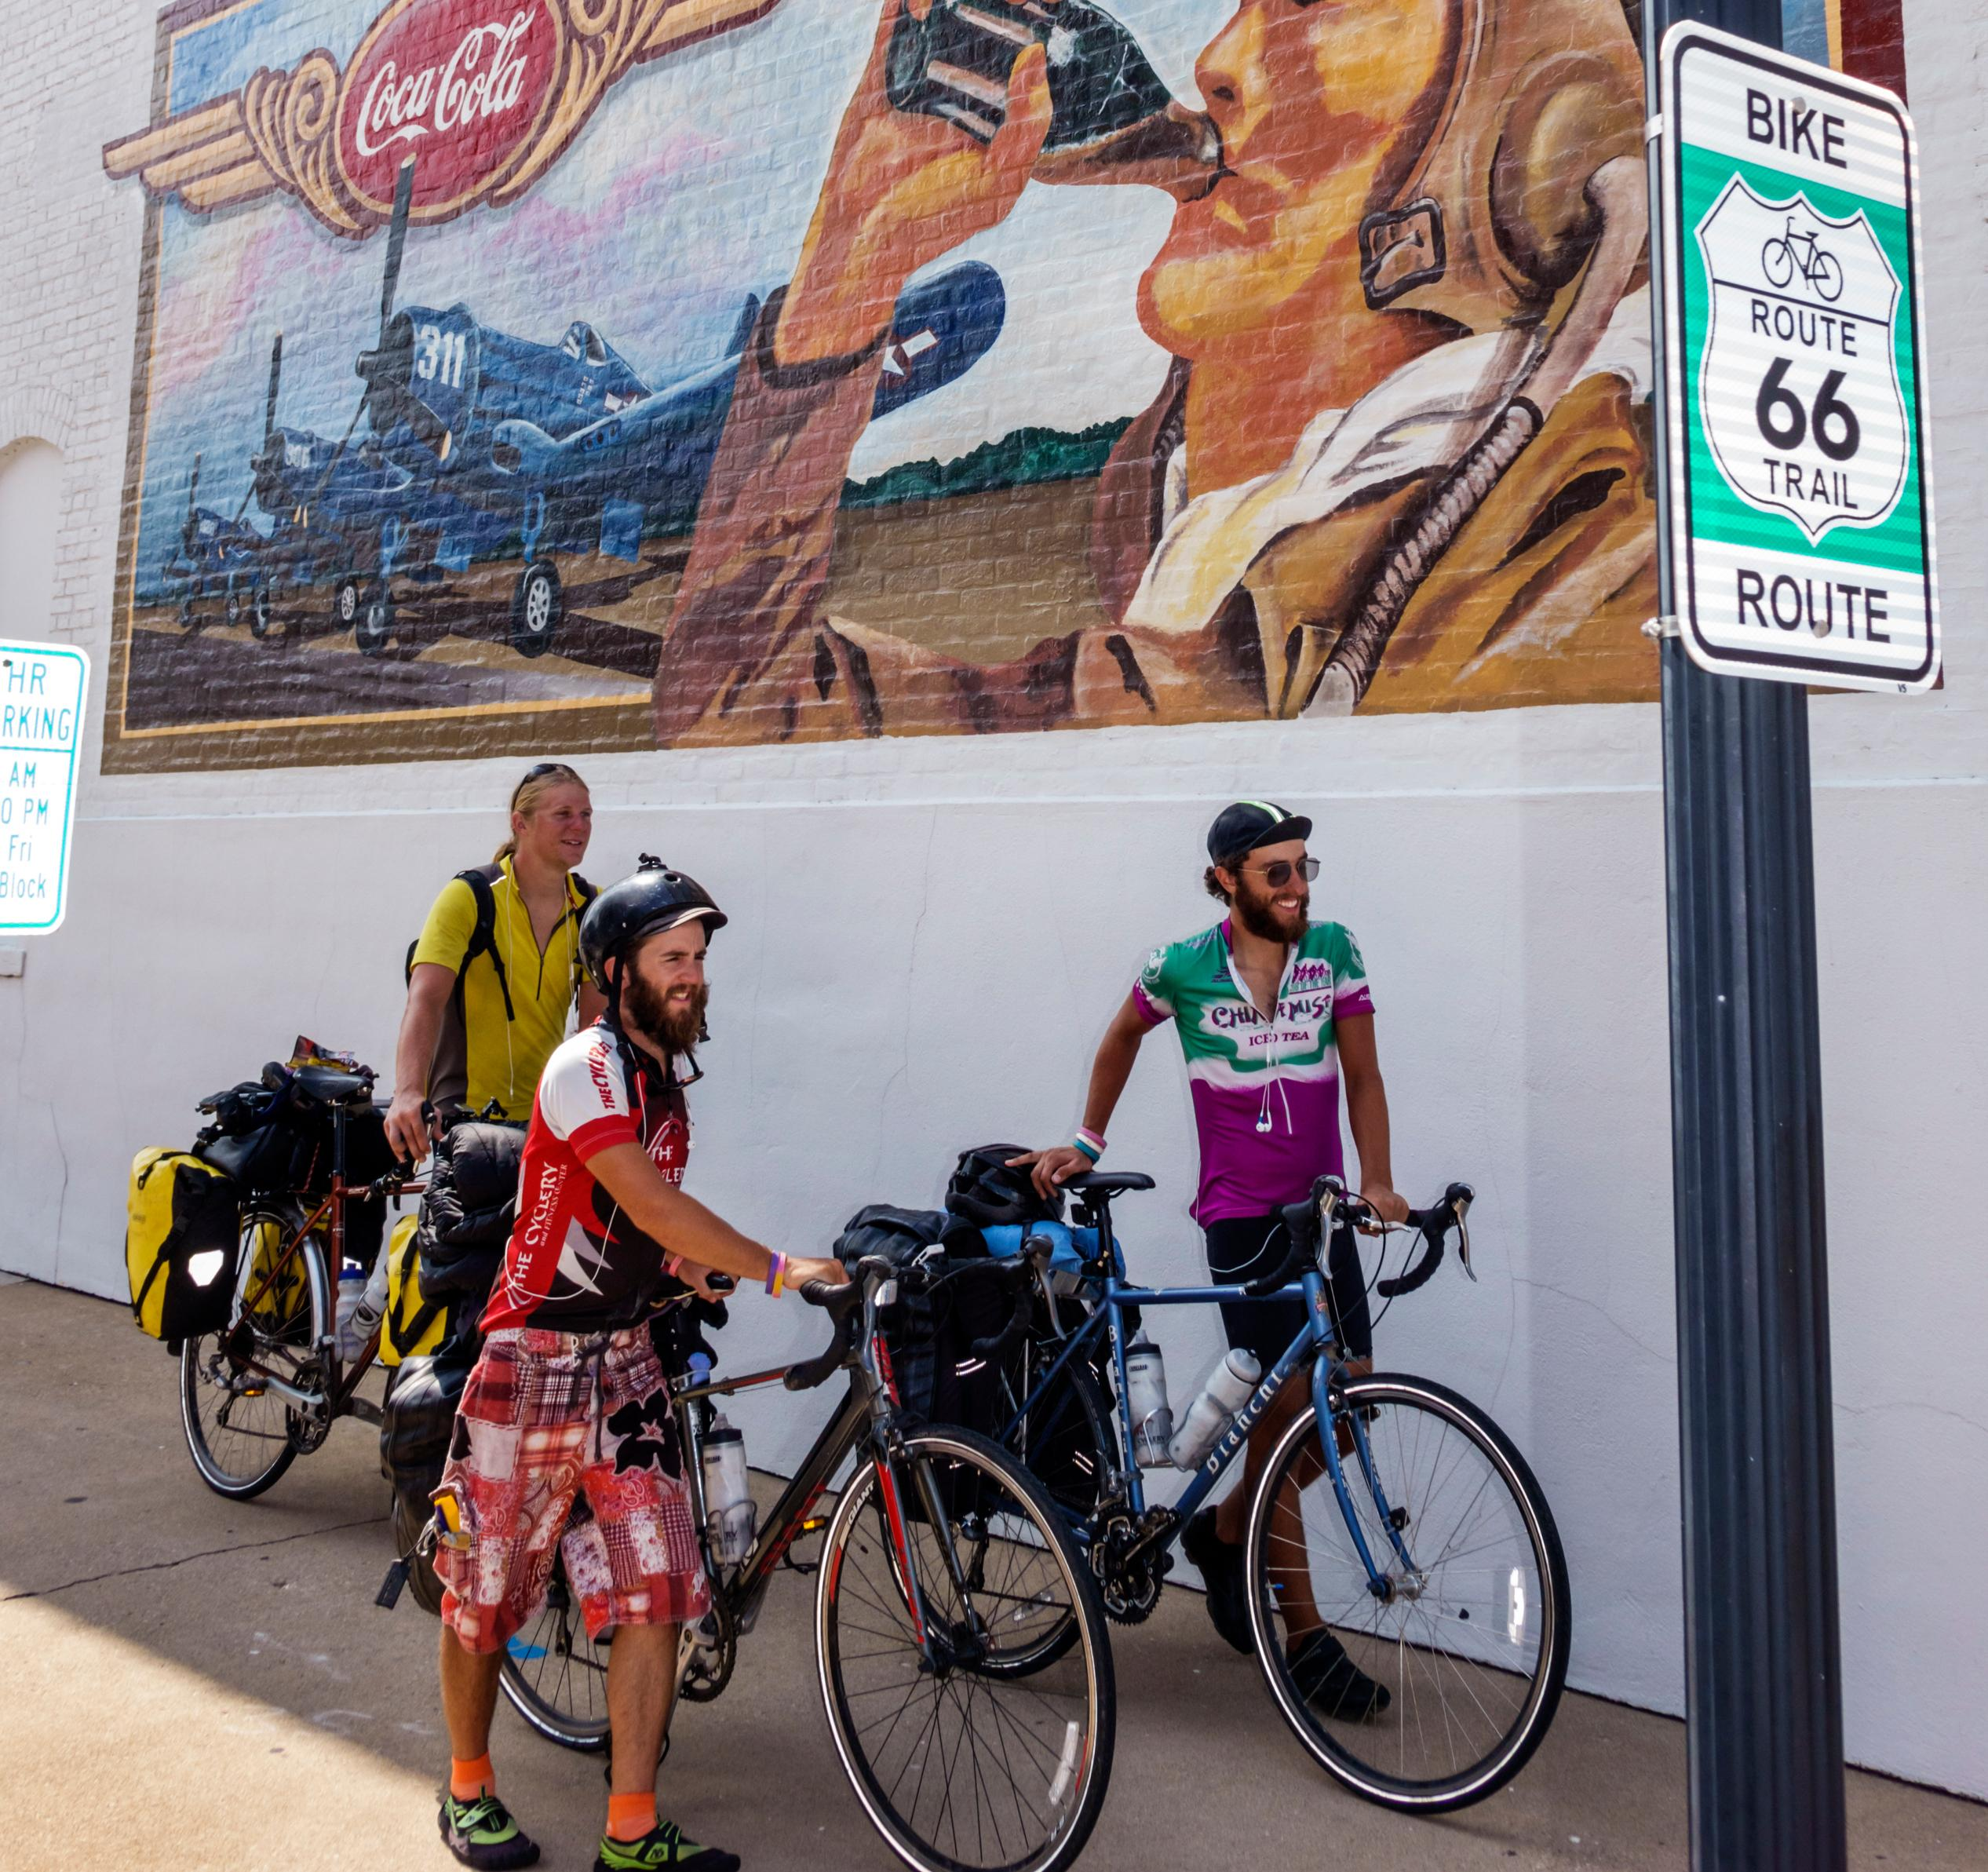 Get your kicks on Route 66: road trips that are even better by bike